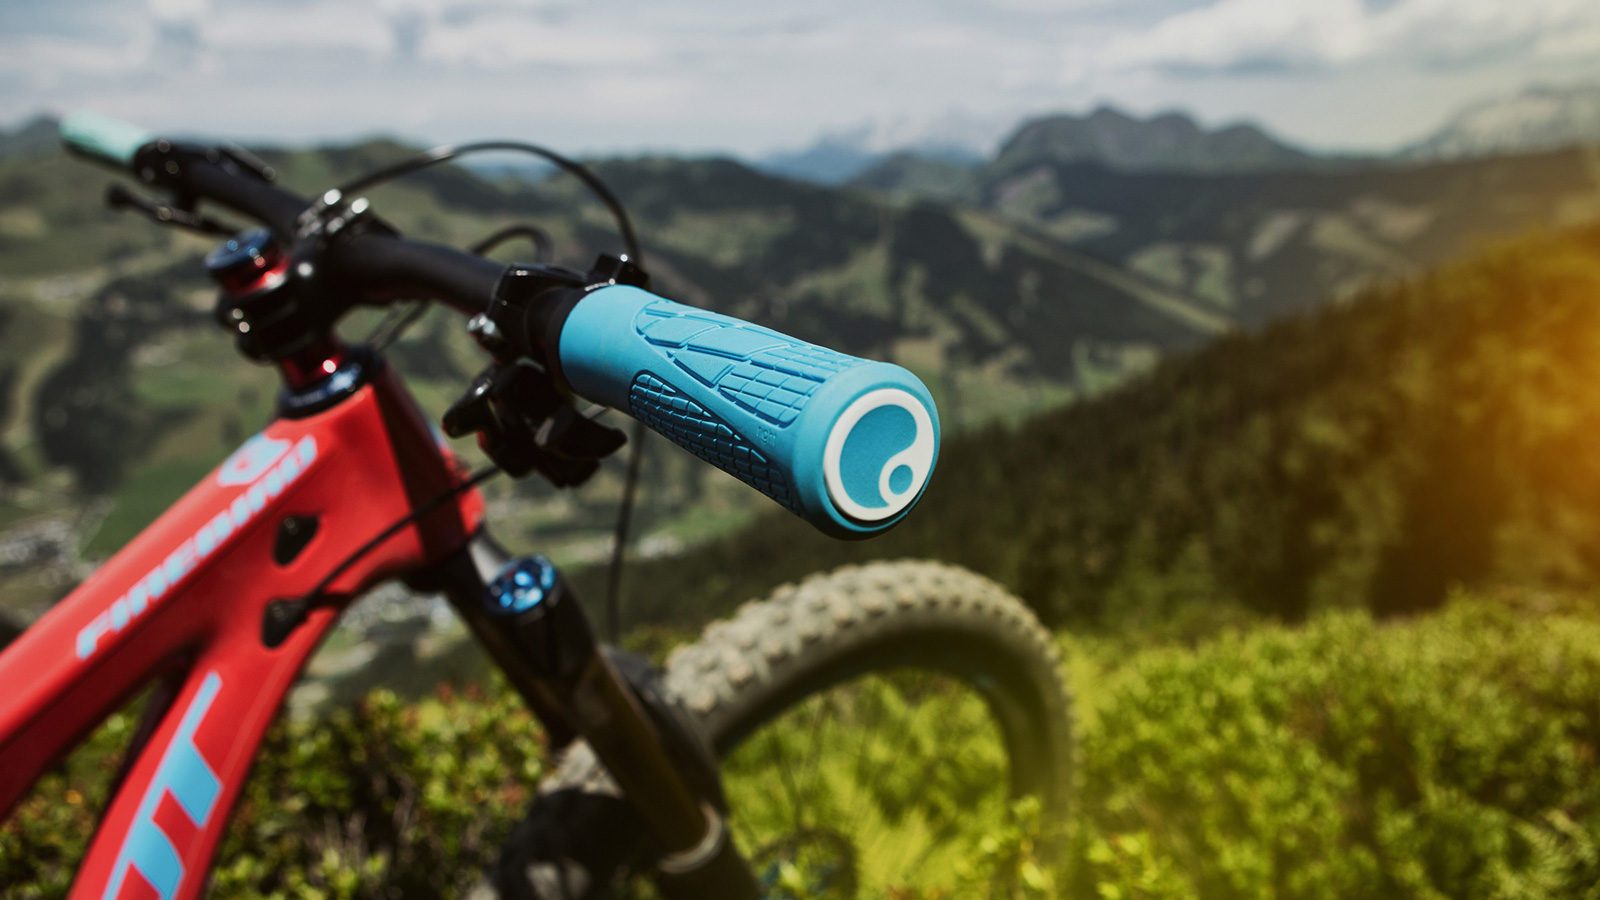 Ergon GA2 Fat grip